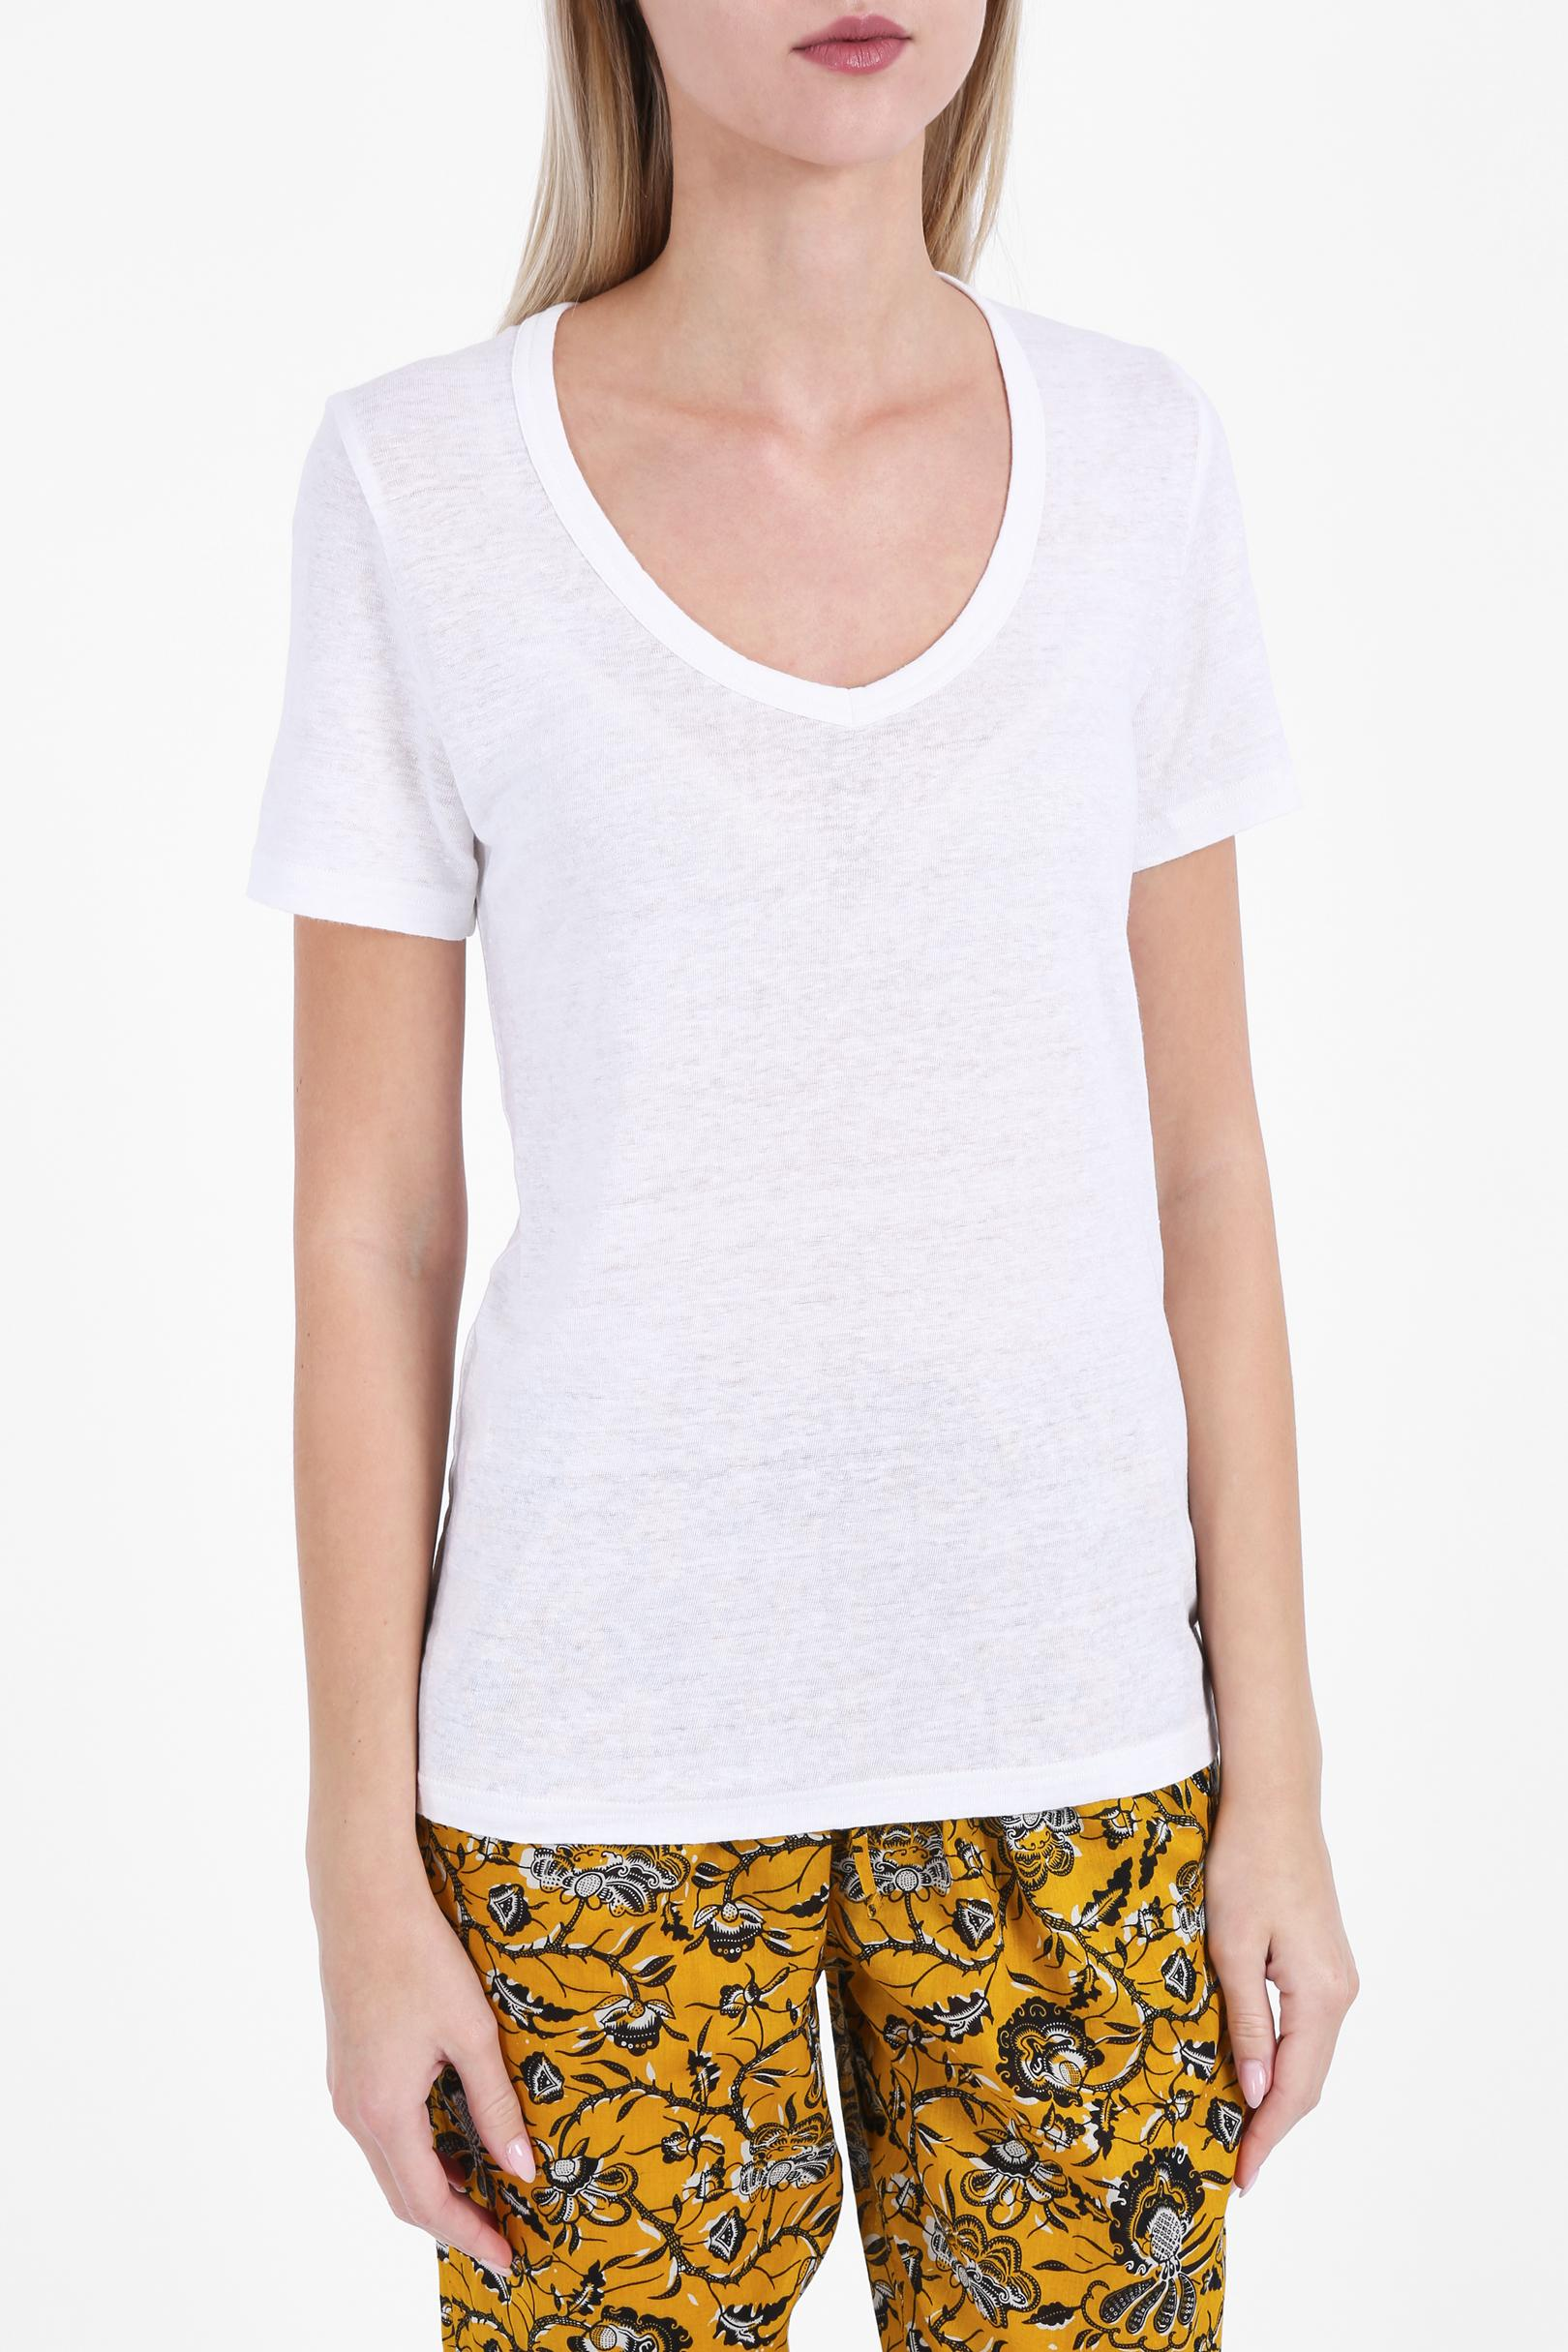 Toile isabel marant kid scoop neck t shirt in white lyst for Isabel marant t shirt sale